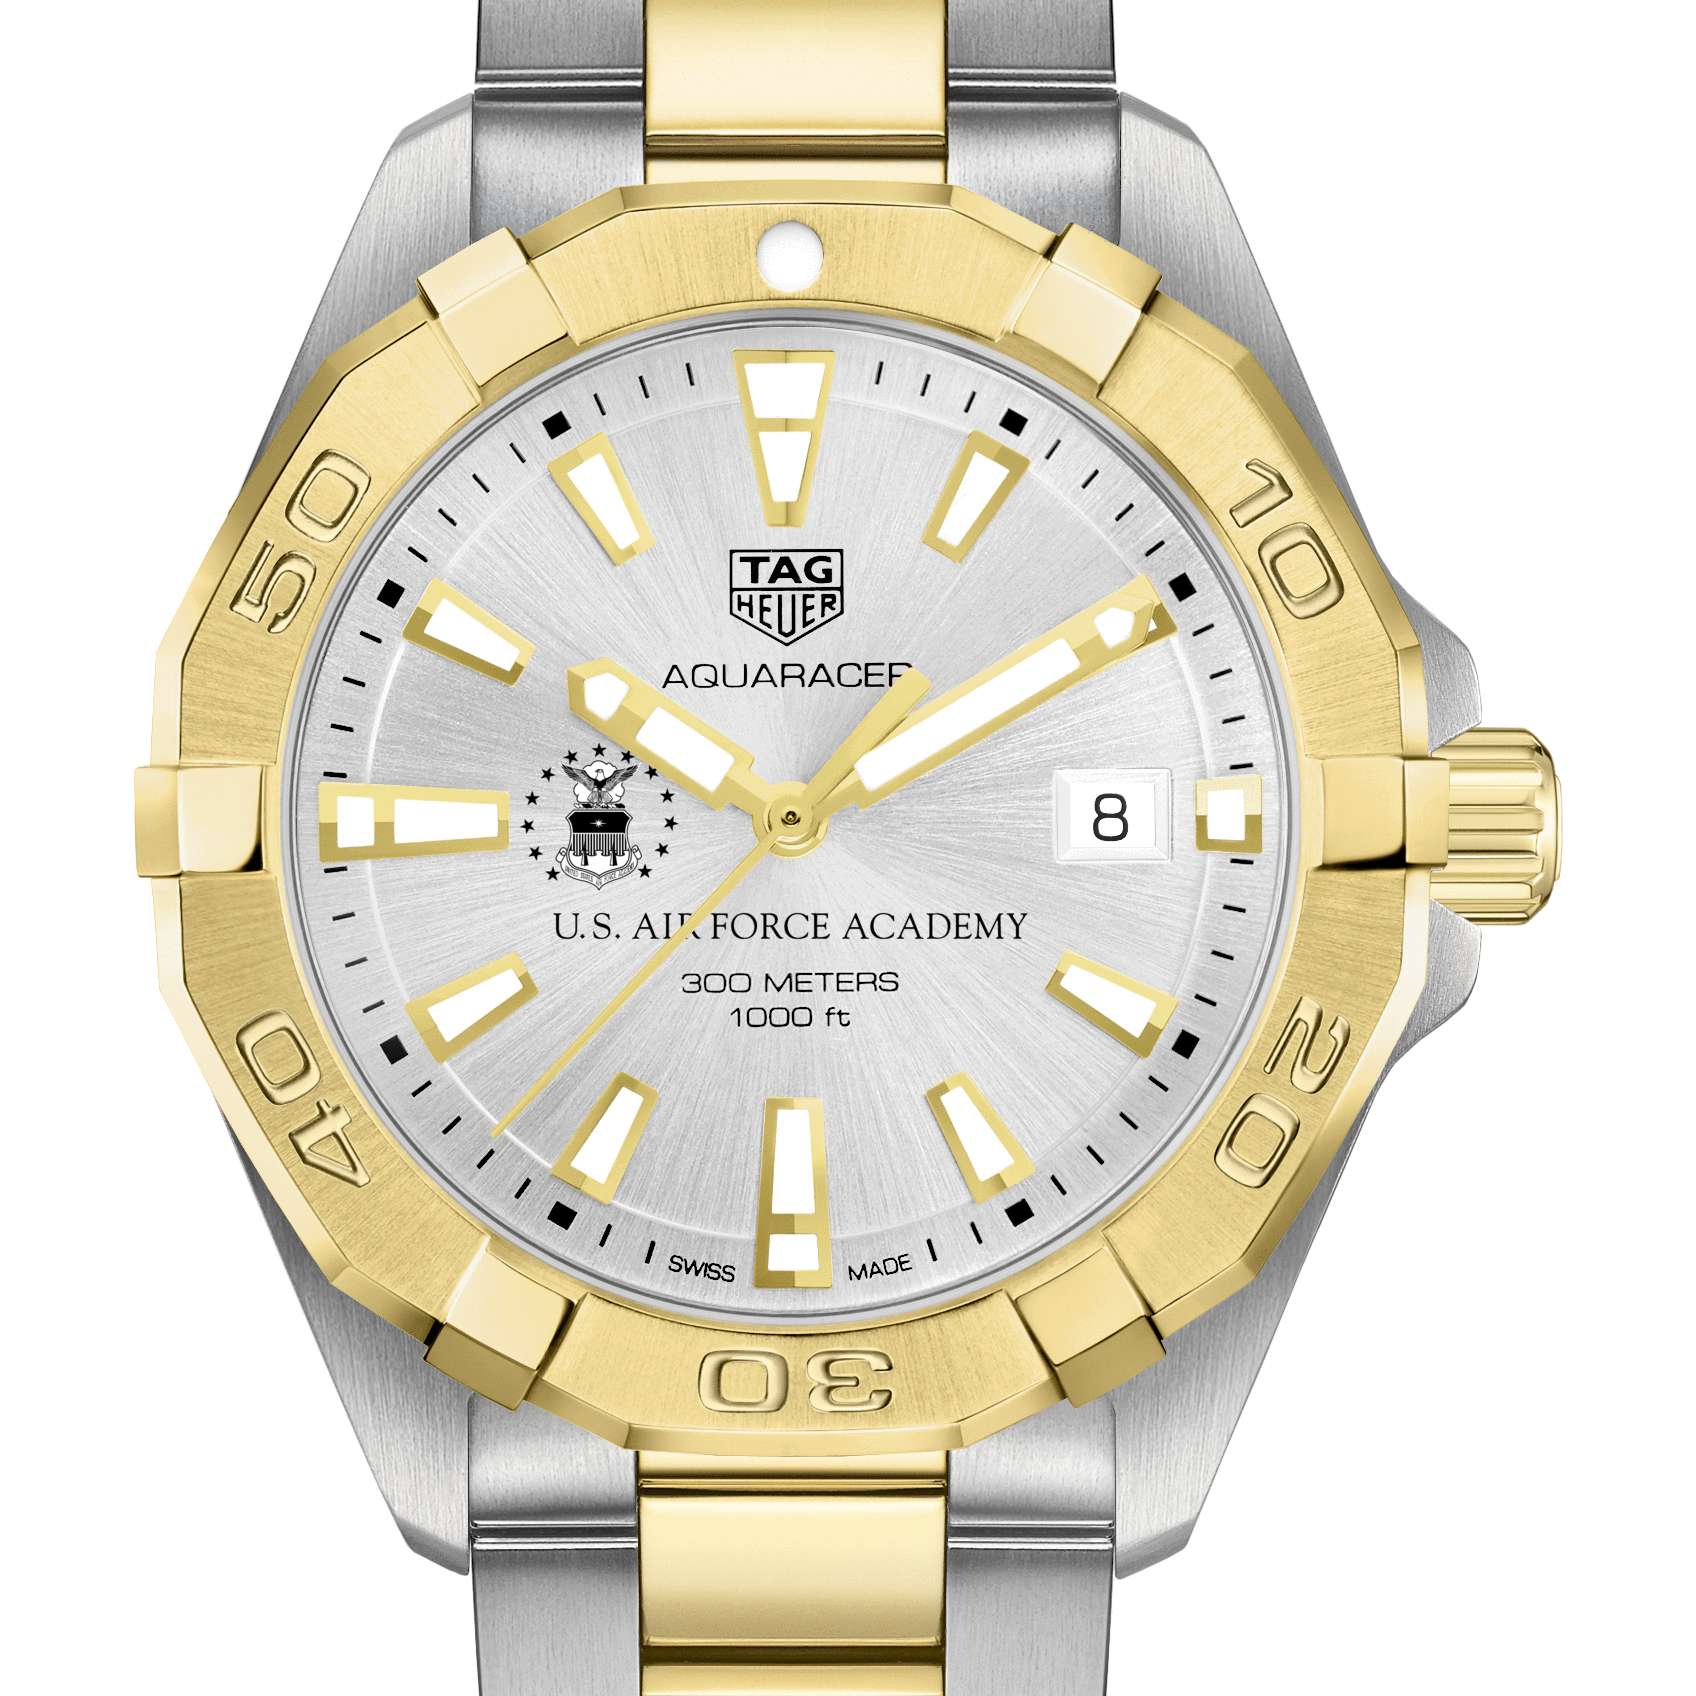 Air Force Academy Men's TAG Heuer Two-Tone Aquaracer